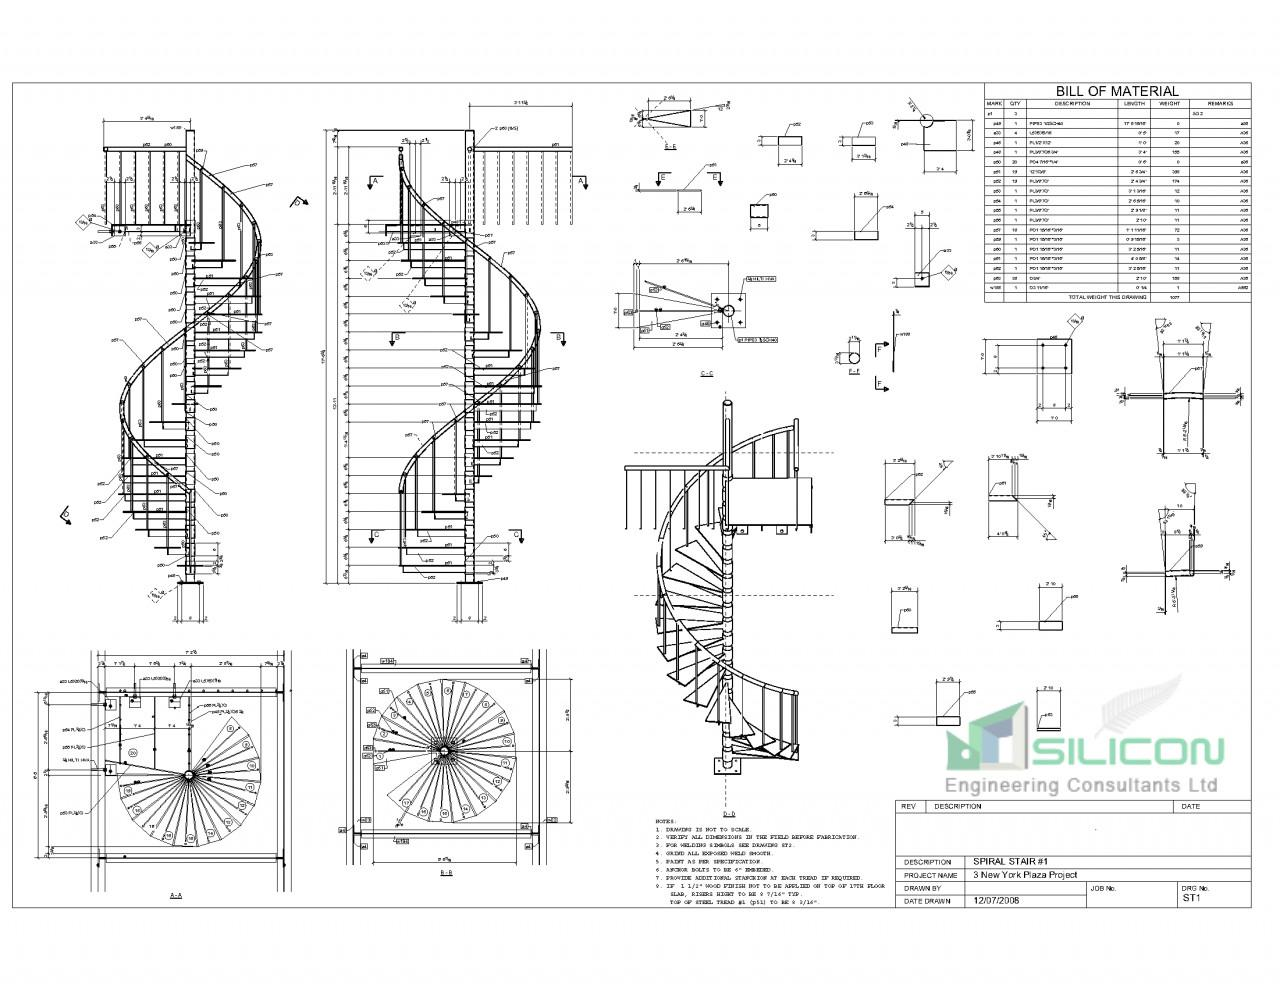 structural steel shop drawing Service Christchurch - Silicon Engineering Consultants Limited.